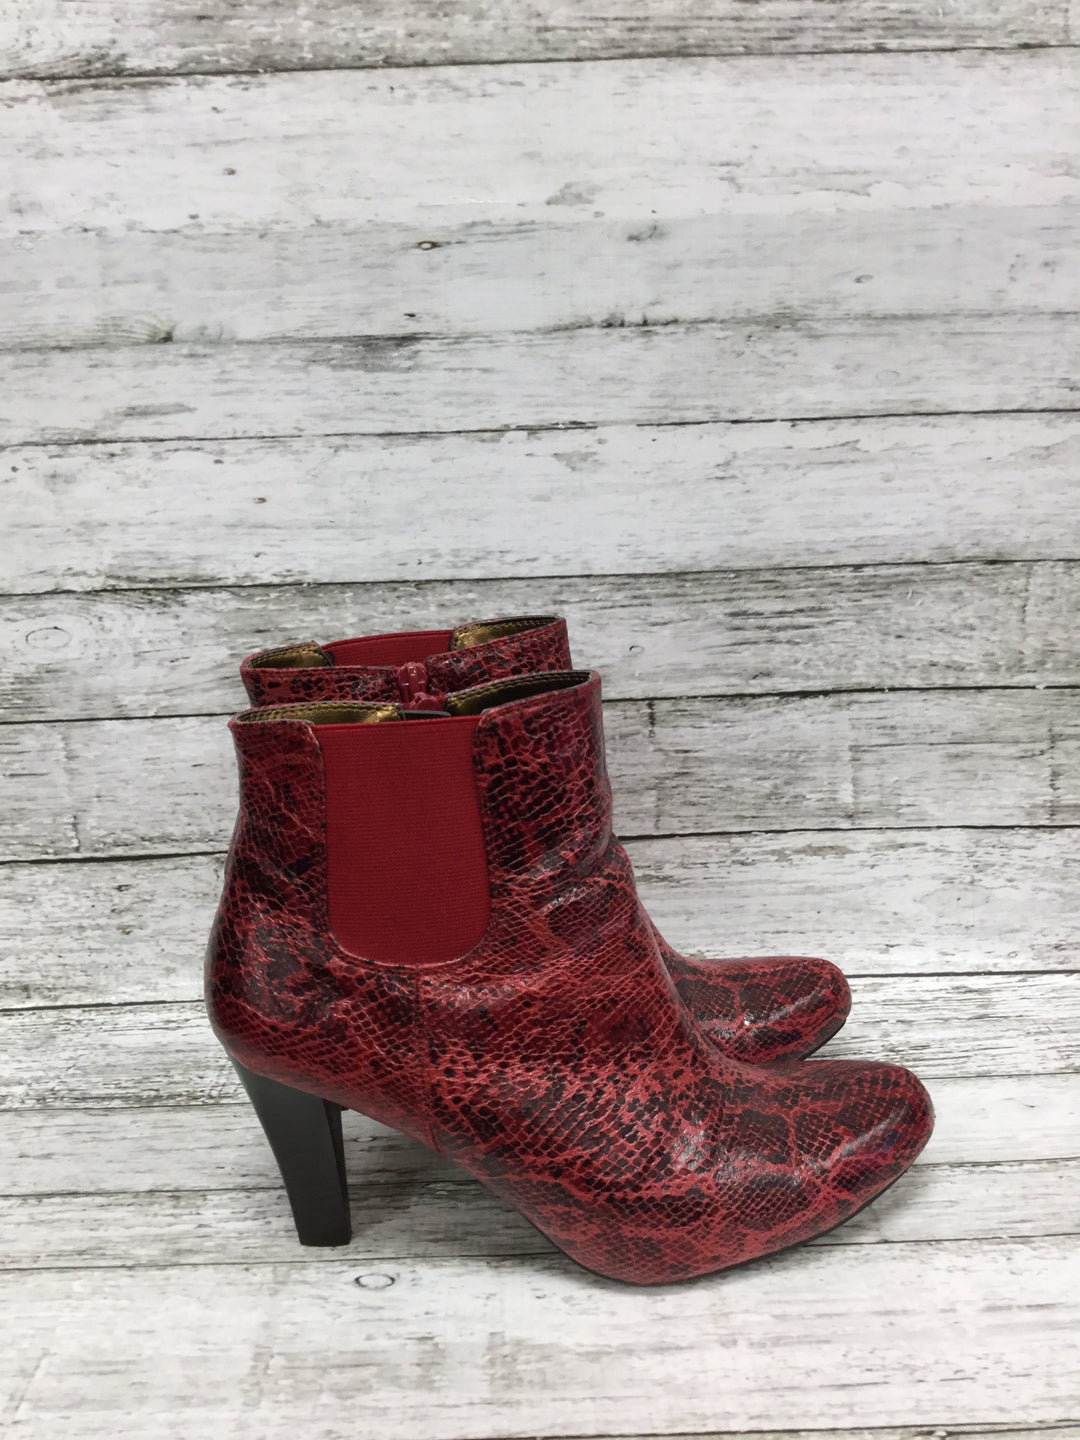 Photo #1 - BRAND: RIALTO , STYLE: BOOTS ANKLE , COLOR: RED , SIZE: 8.5 , SKU: 127-4876-8622, , RED SNAKESKIN HEELED BOOTIES!